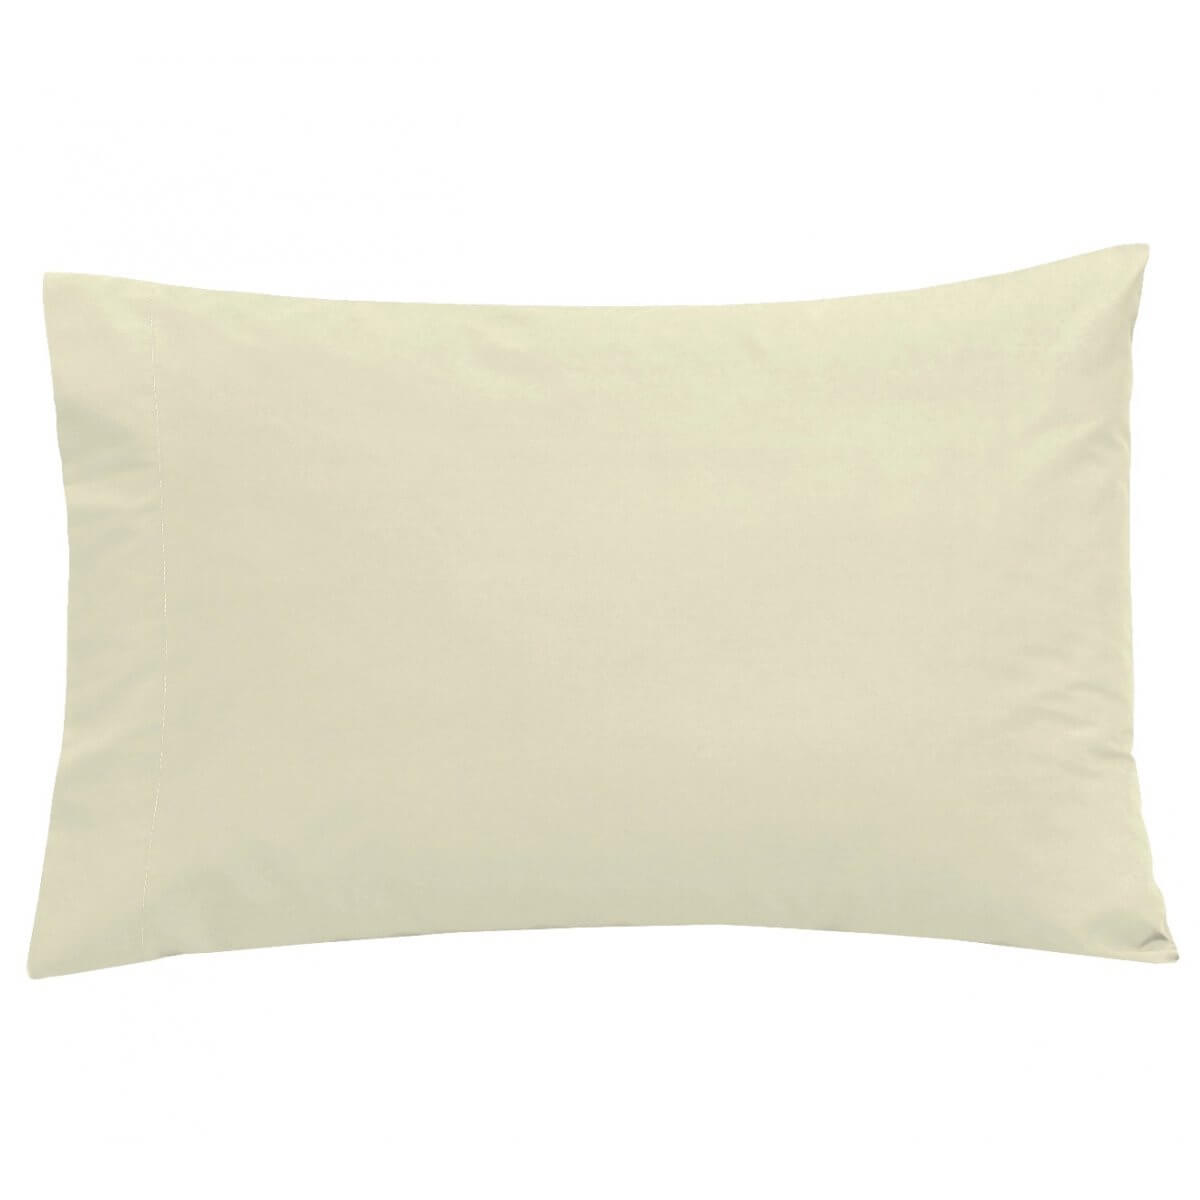 100% Egyptian Cotton 200 Thread Count Housewife Pillowcase Pair Ivory